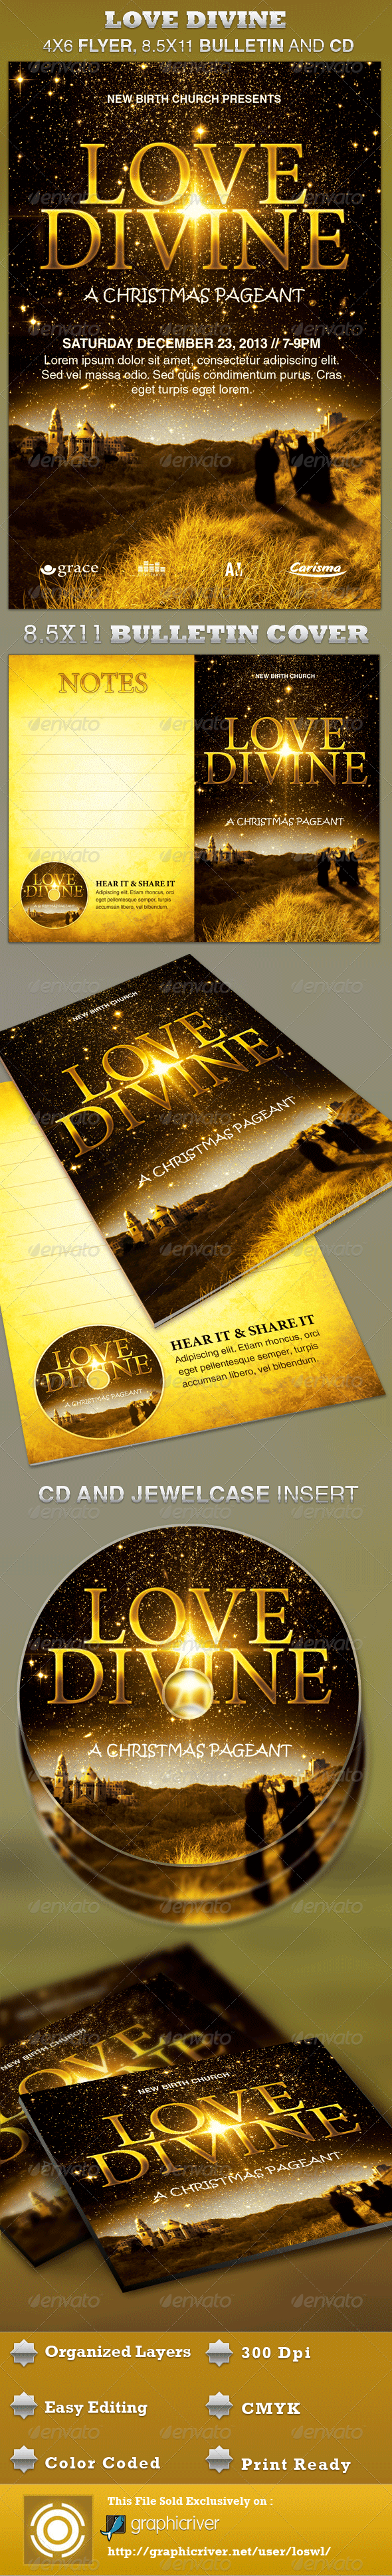 Love Divine Flyer, Bulletin and CD Template - Church Flyers